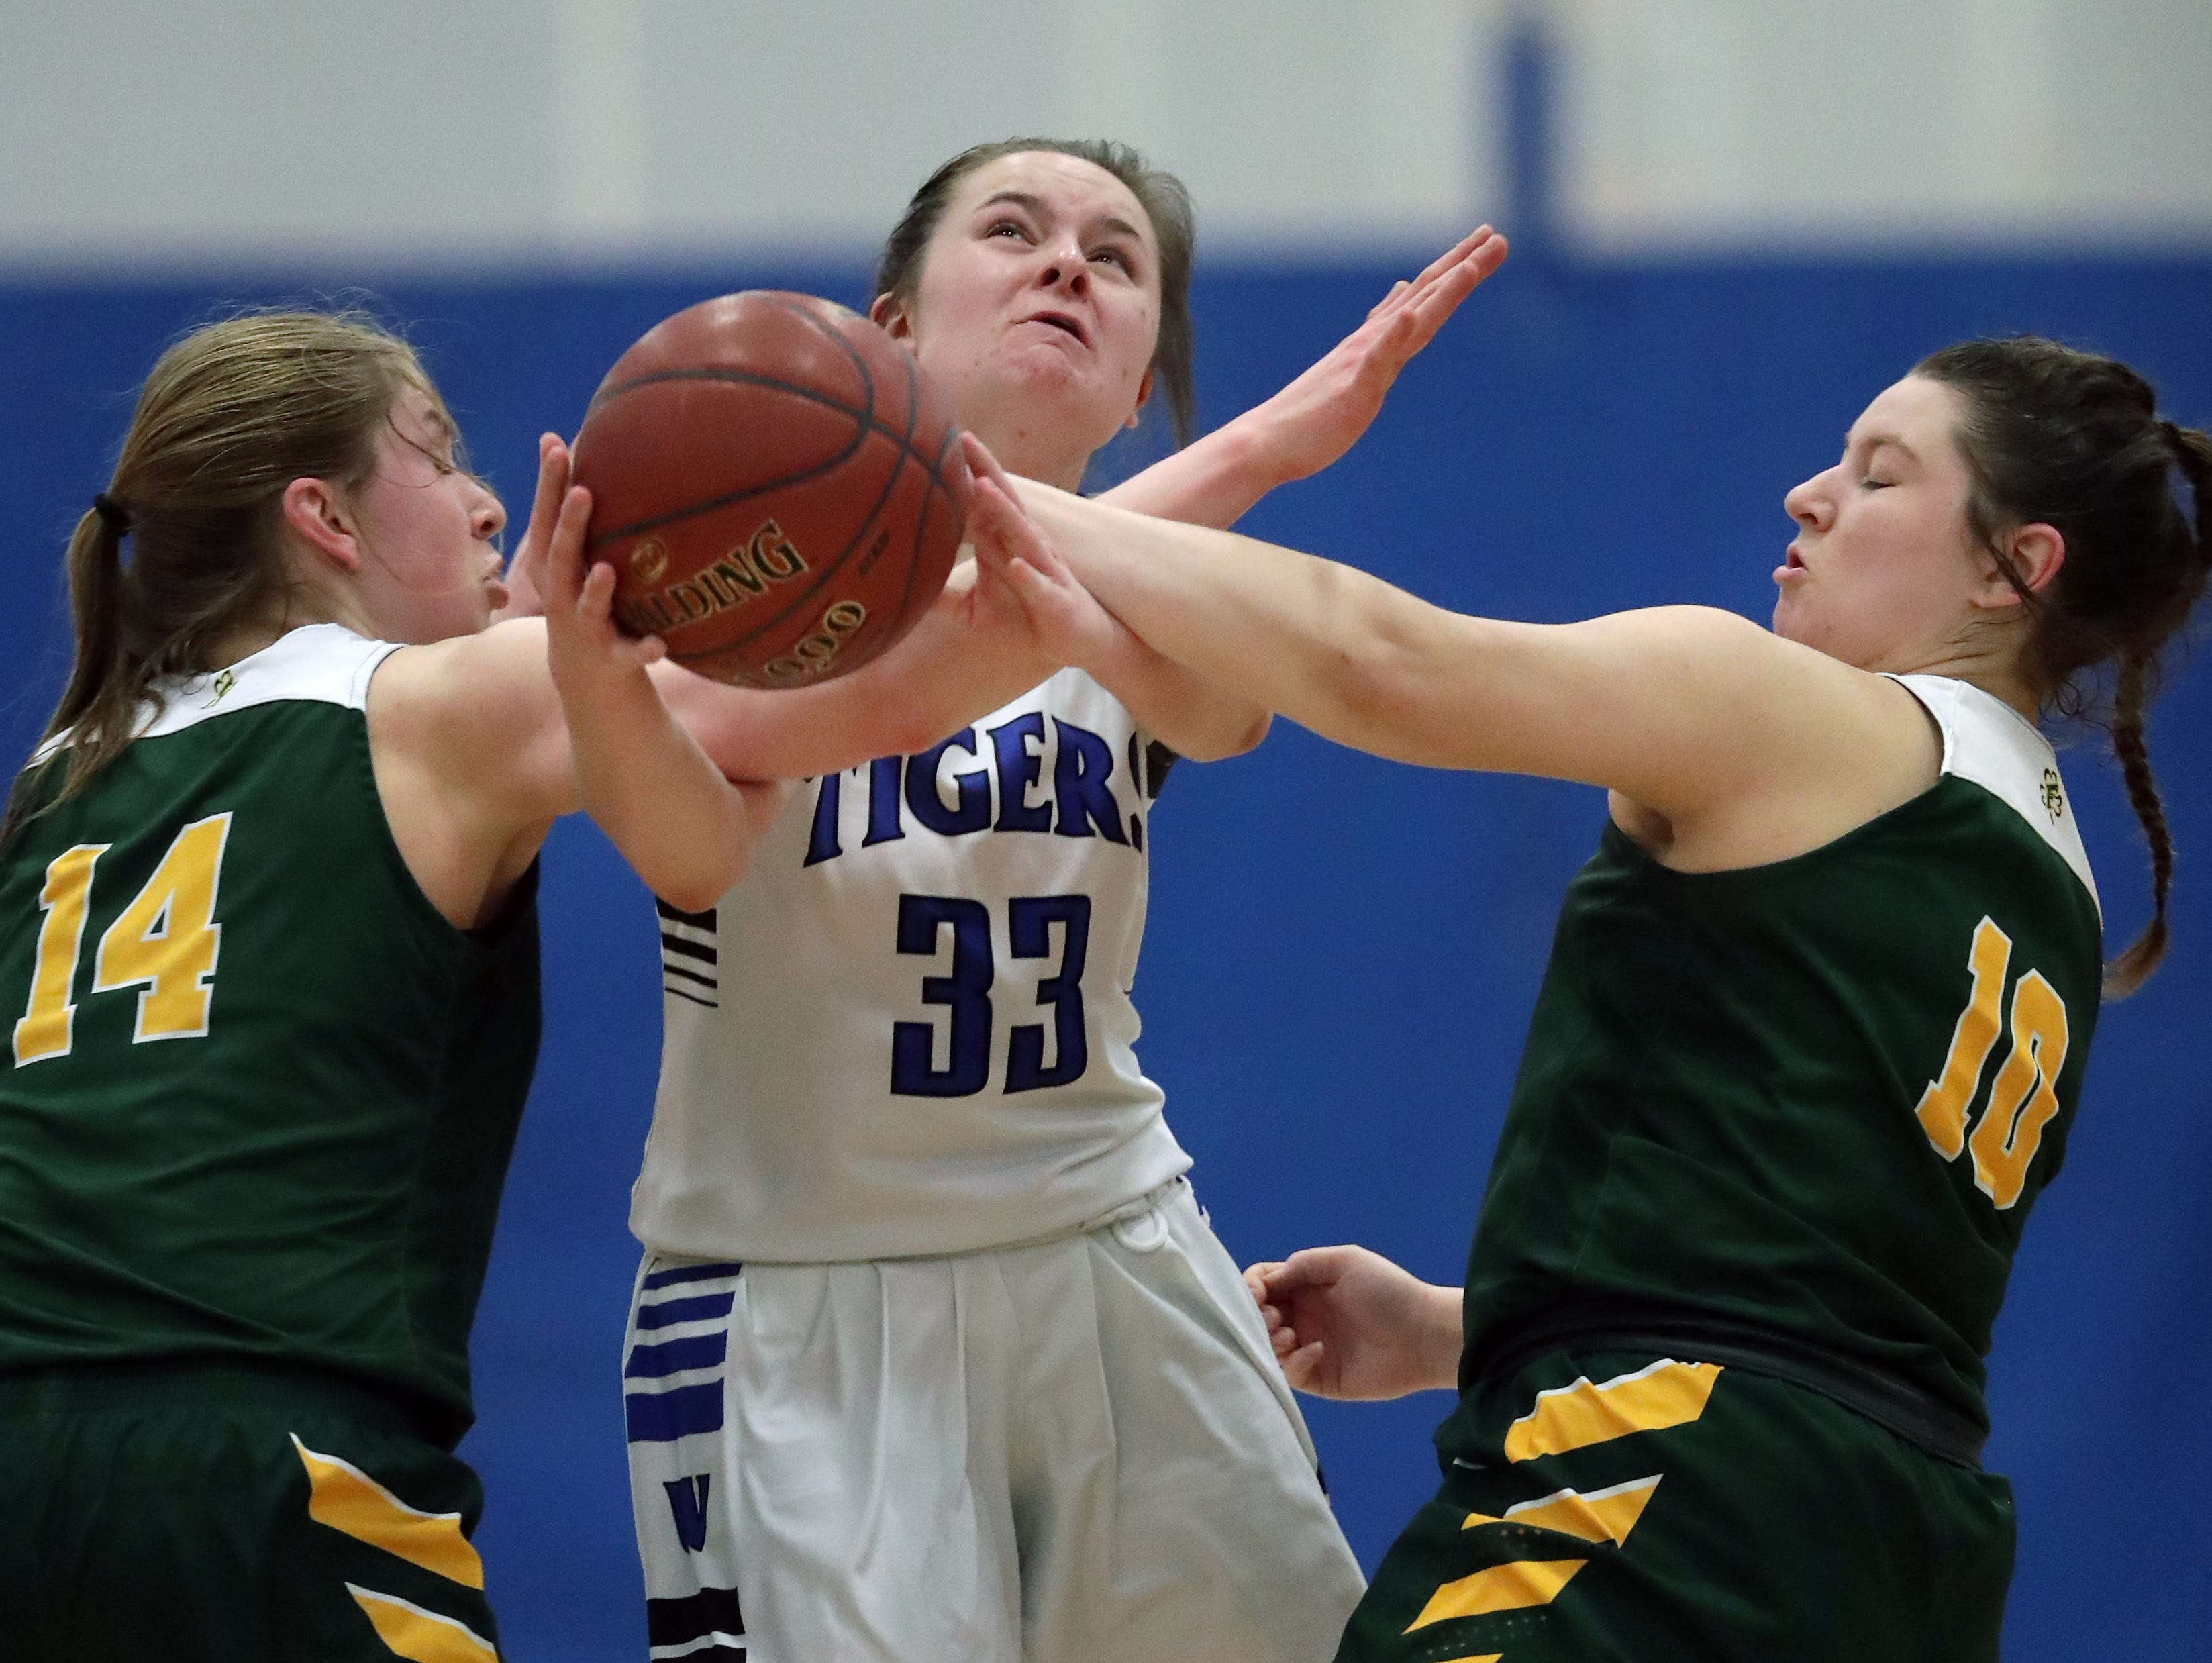 Wrightstown High School's #33 Dayna Van Egeren against Freedom High School's #14 Karissa Wursrter and #10 Cameron Evers during their North Eastern Conference girls basketball game on Friday, February 15, 2019, in Wrightstown, Wis. Wm. Glasheen/USA TODAY NETWORK-Wisconsin.